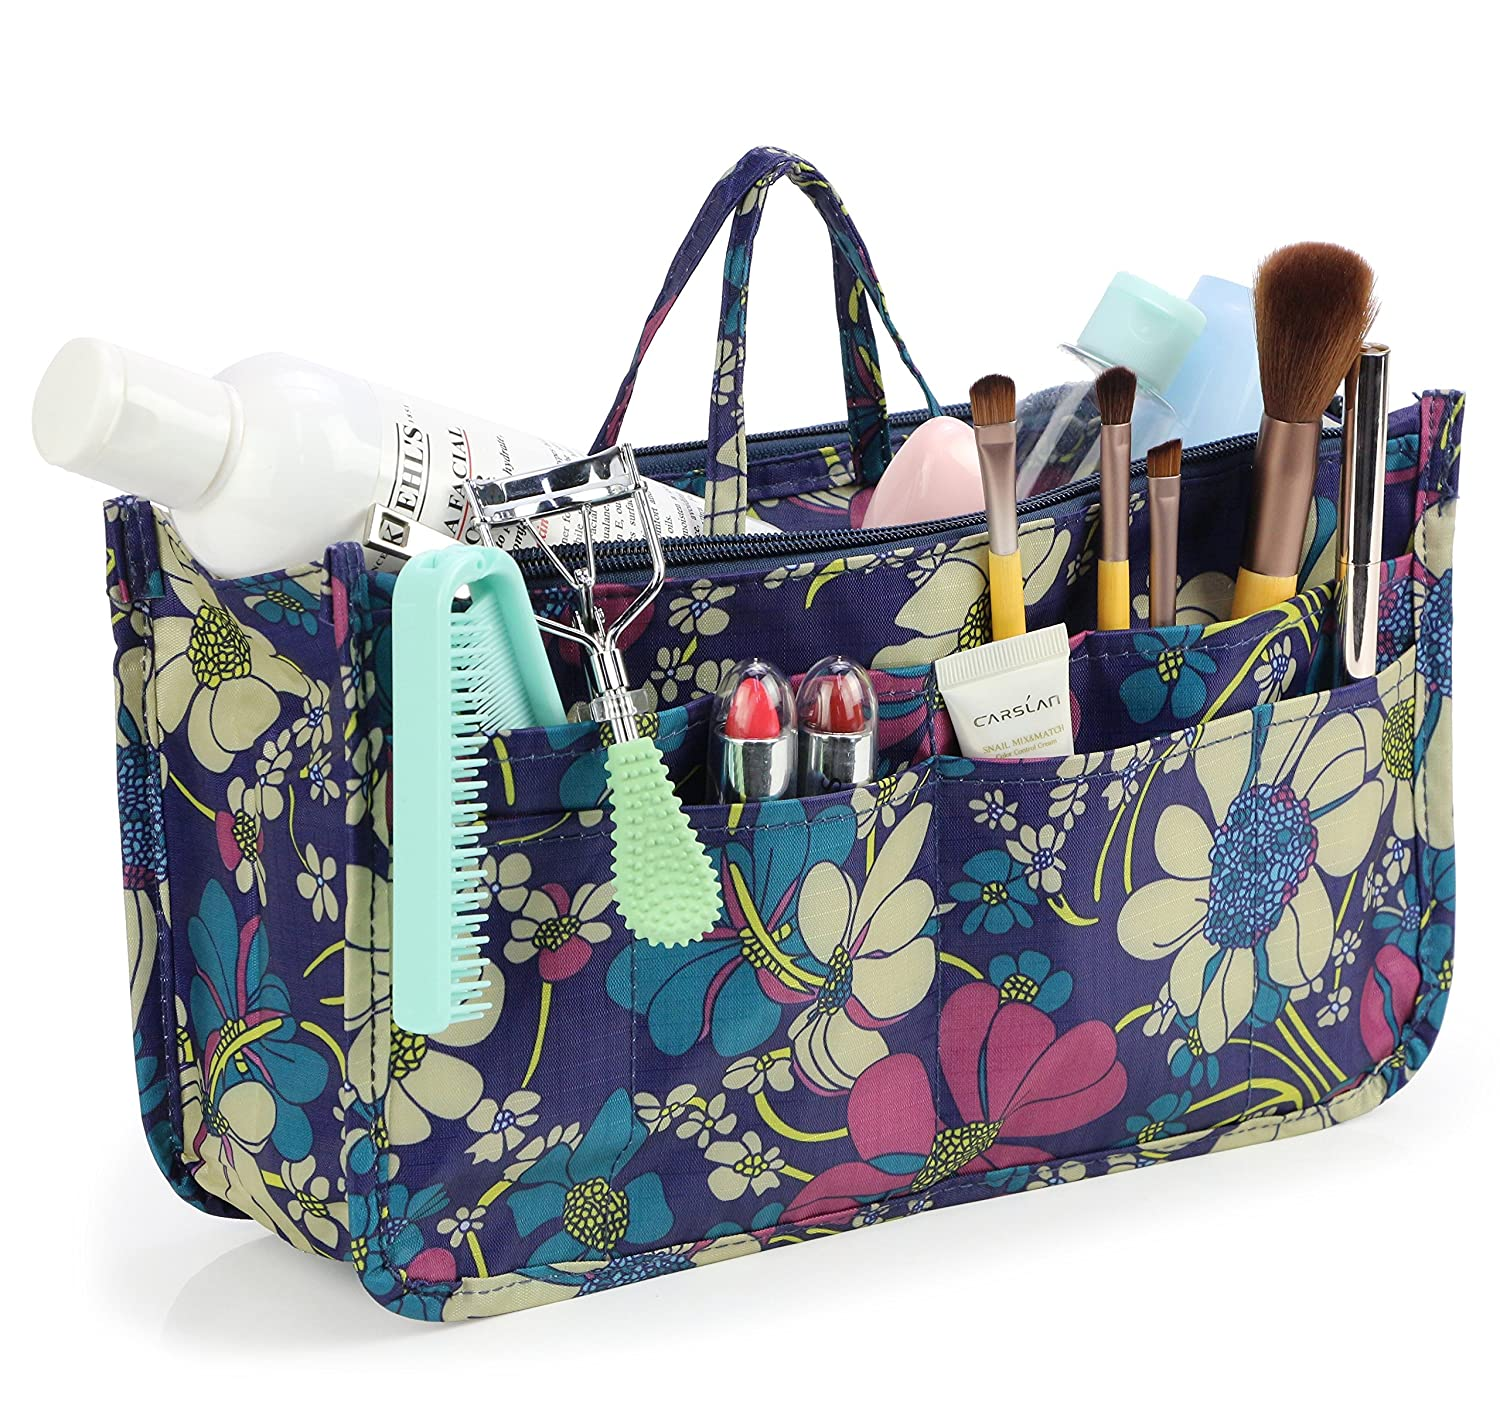 Cosmetic Bag for Women Cute Printing 14 Pockets Expandable Makeup Organizer Purse with Handles (Owl) 73021